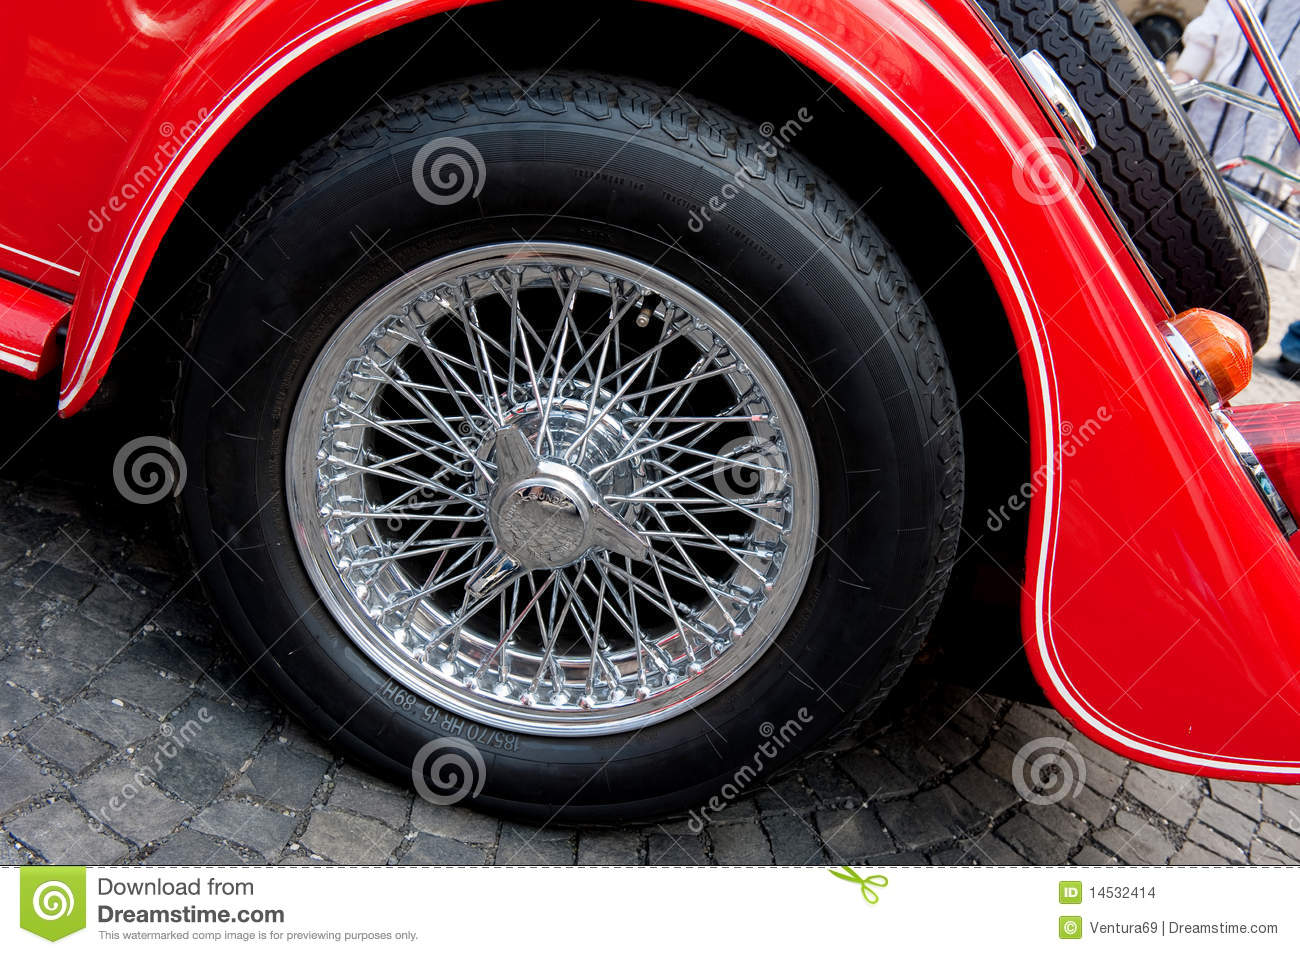 Wheel of vintage car stock photo. Image of industry, machinery ...